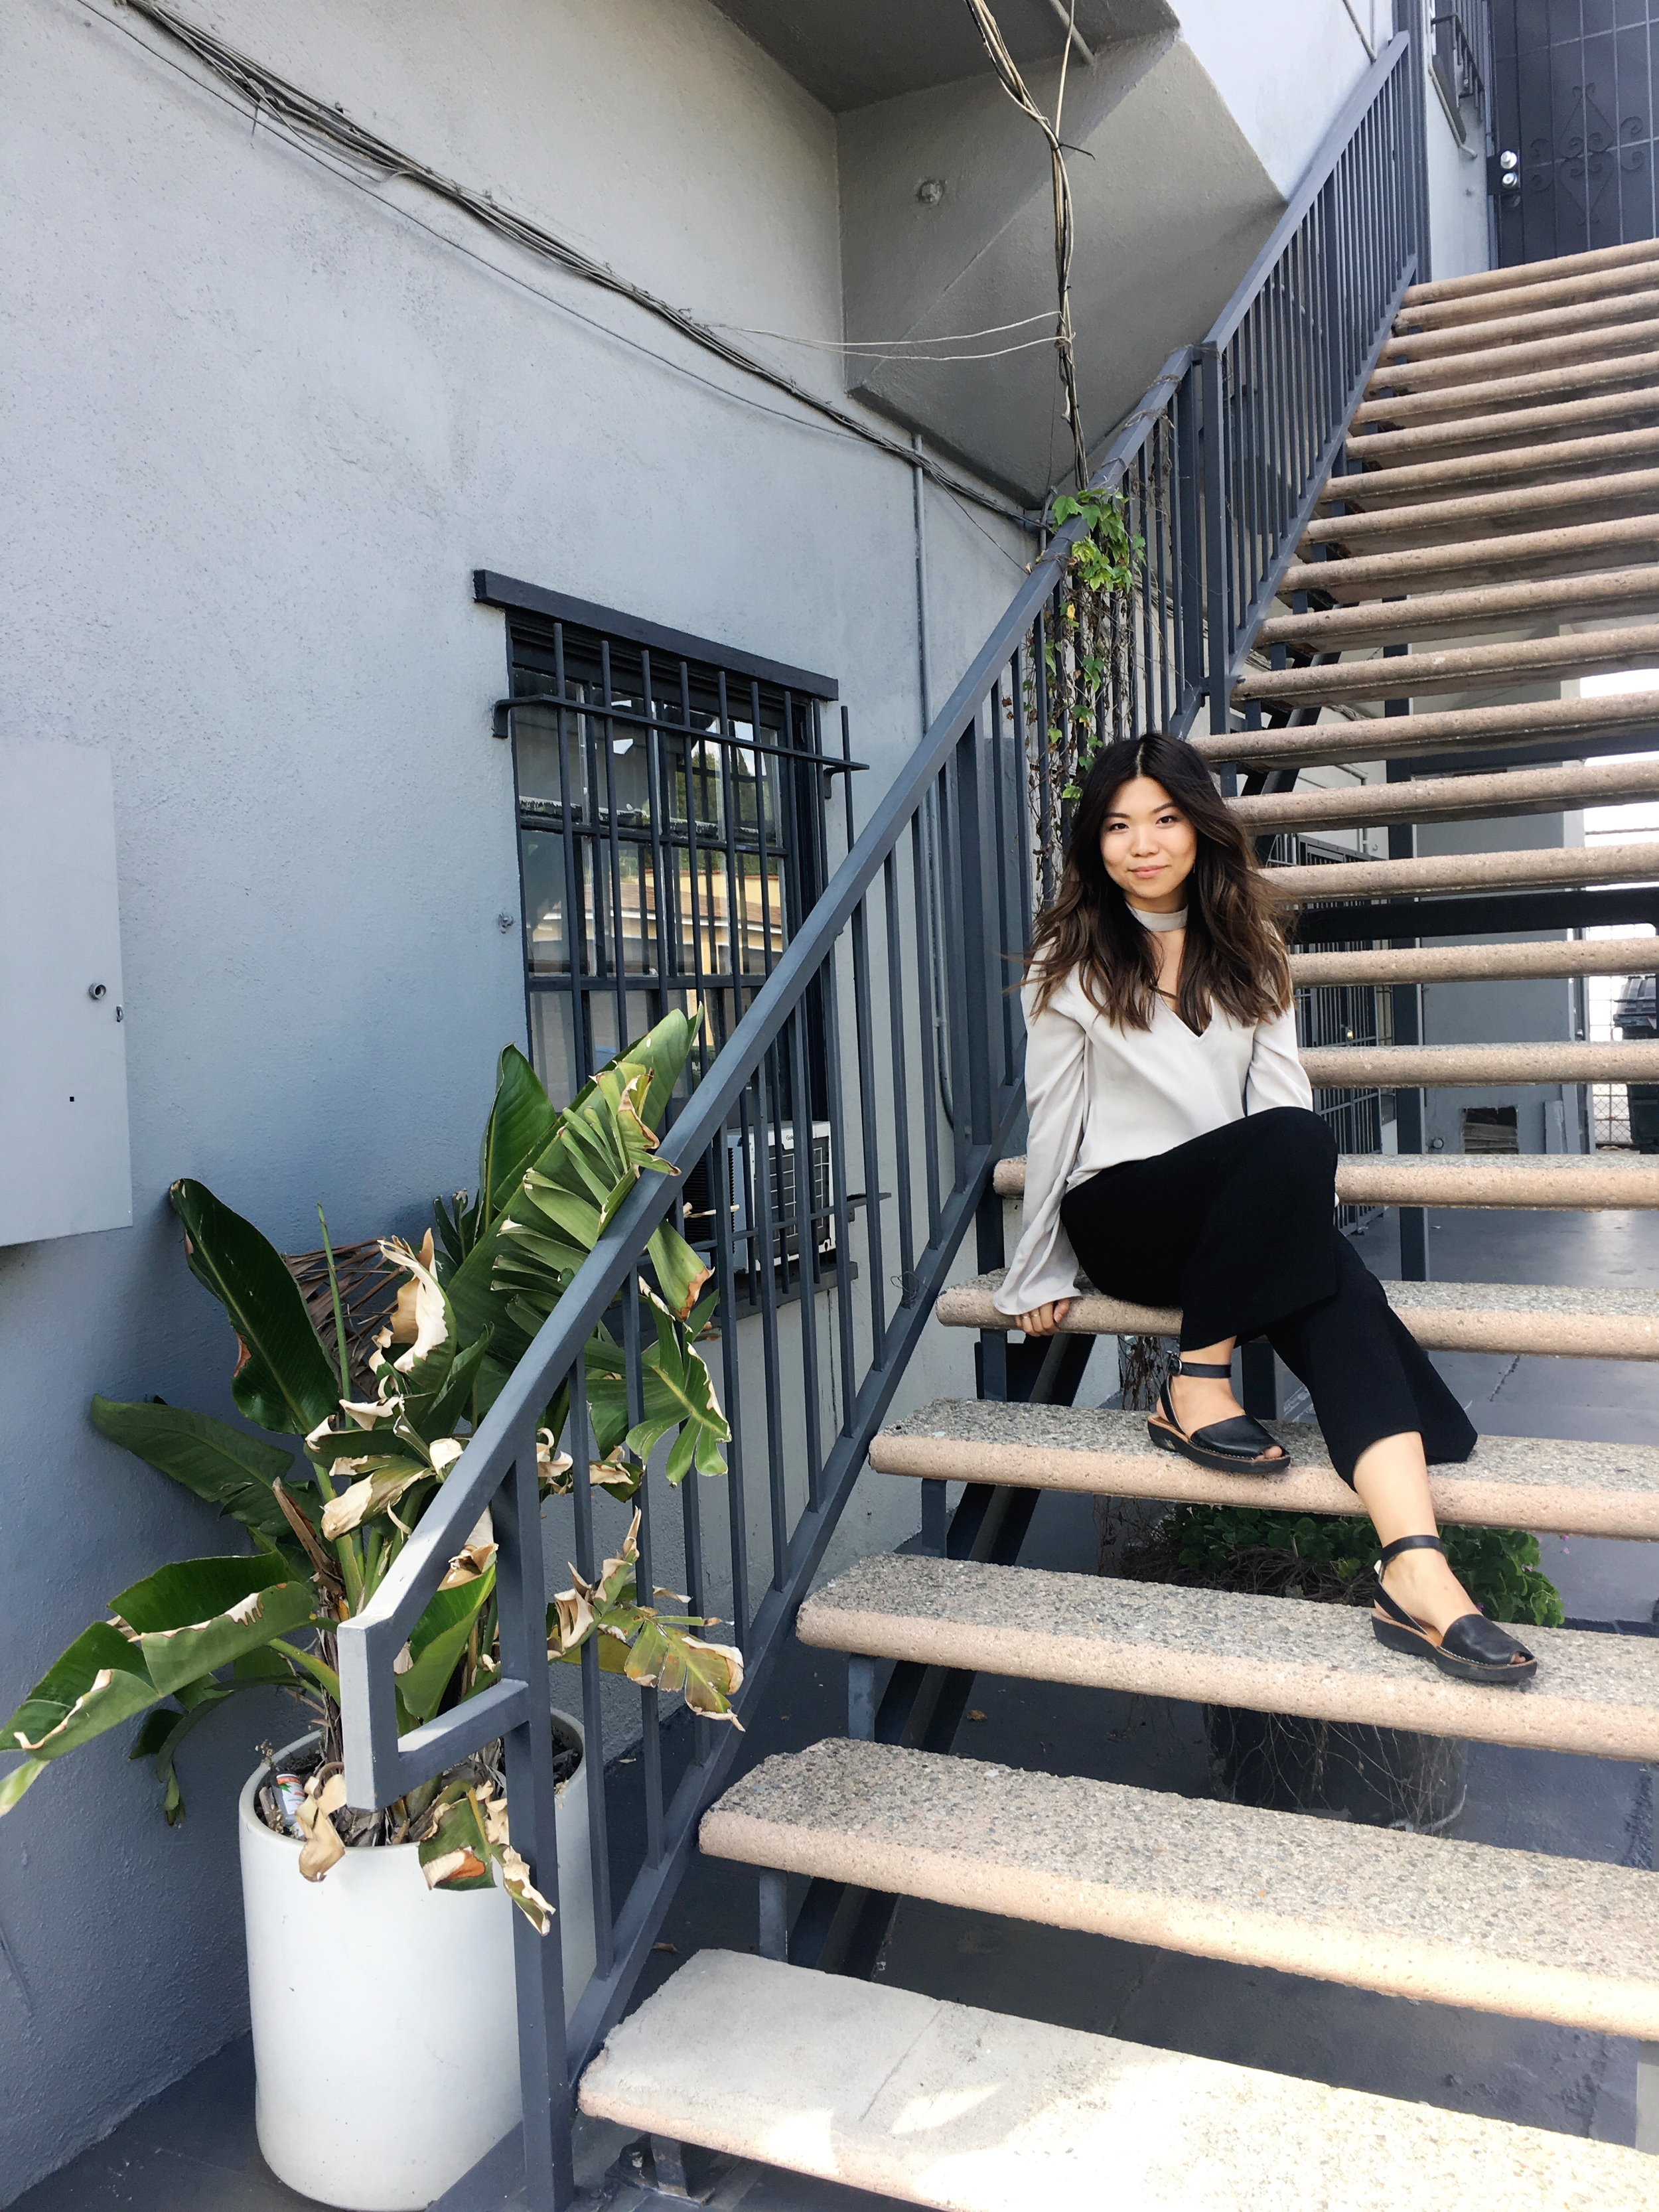 staircase pic